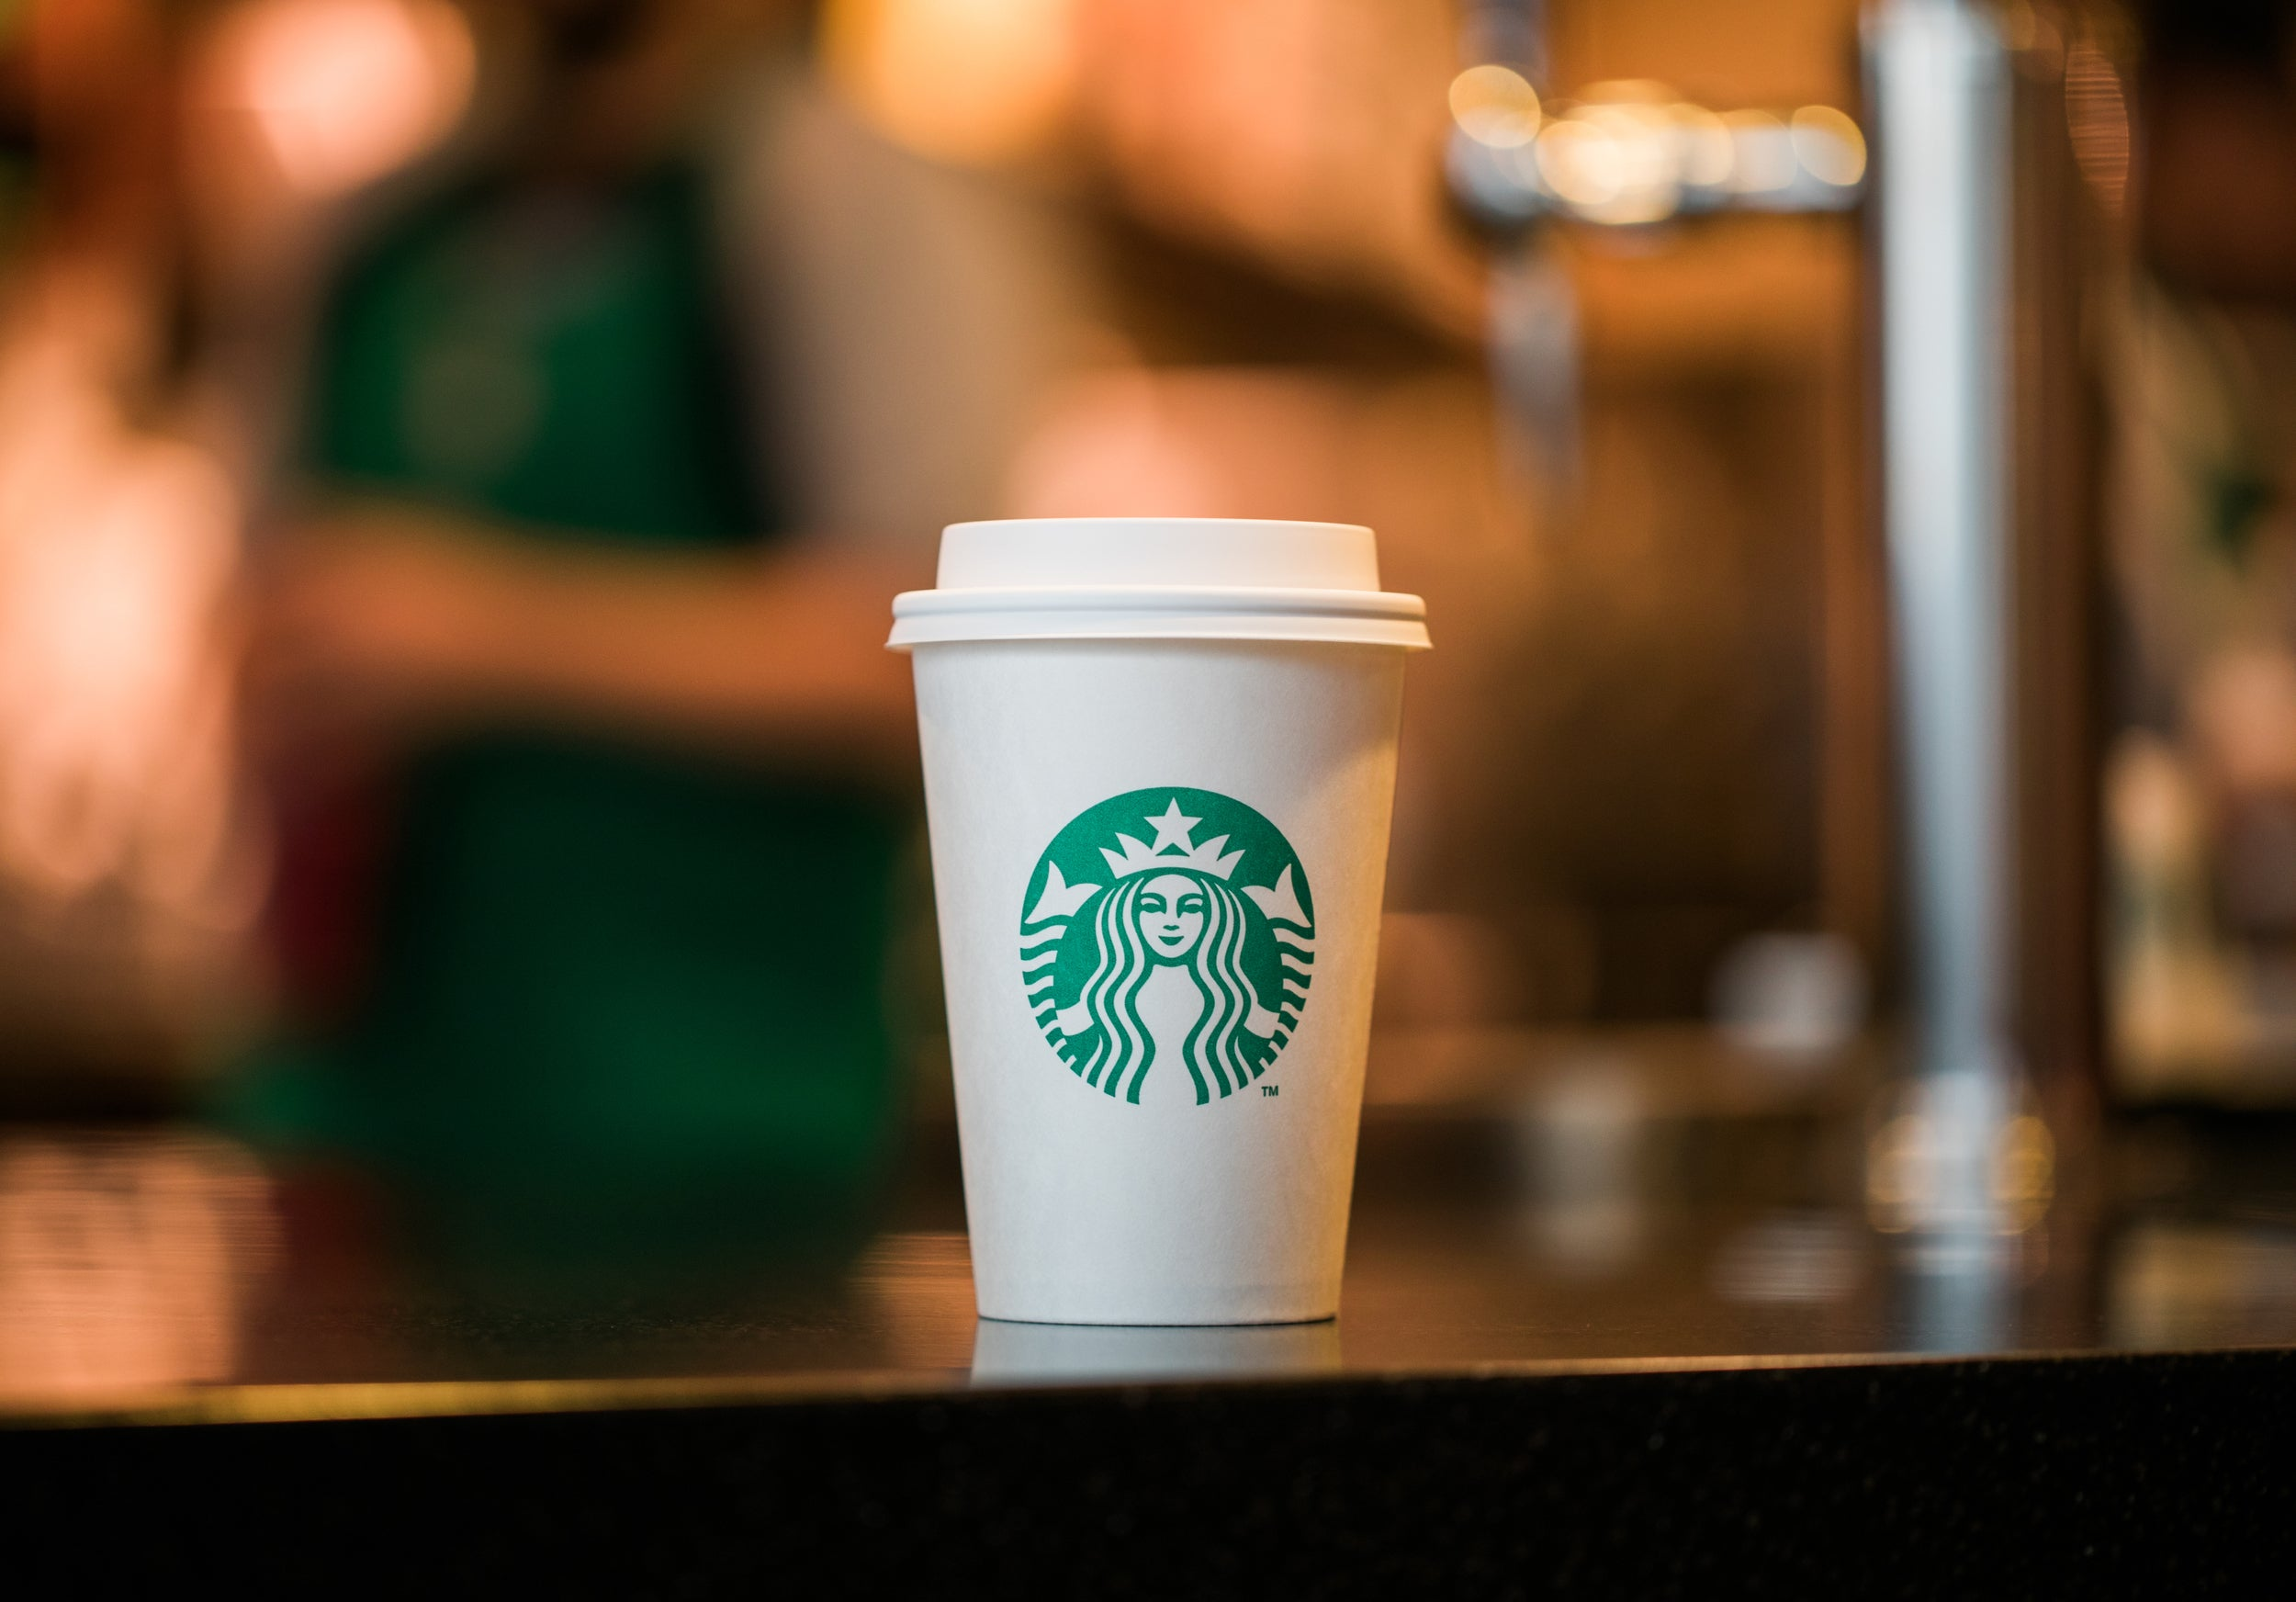 If You Invested $10,000 In Starbucks' Ipo, This Is How Much You'd Have Now @themotleyfool #stocks $sbux photo